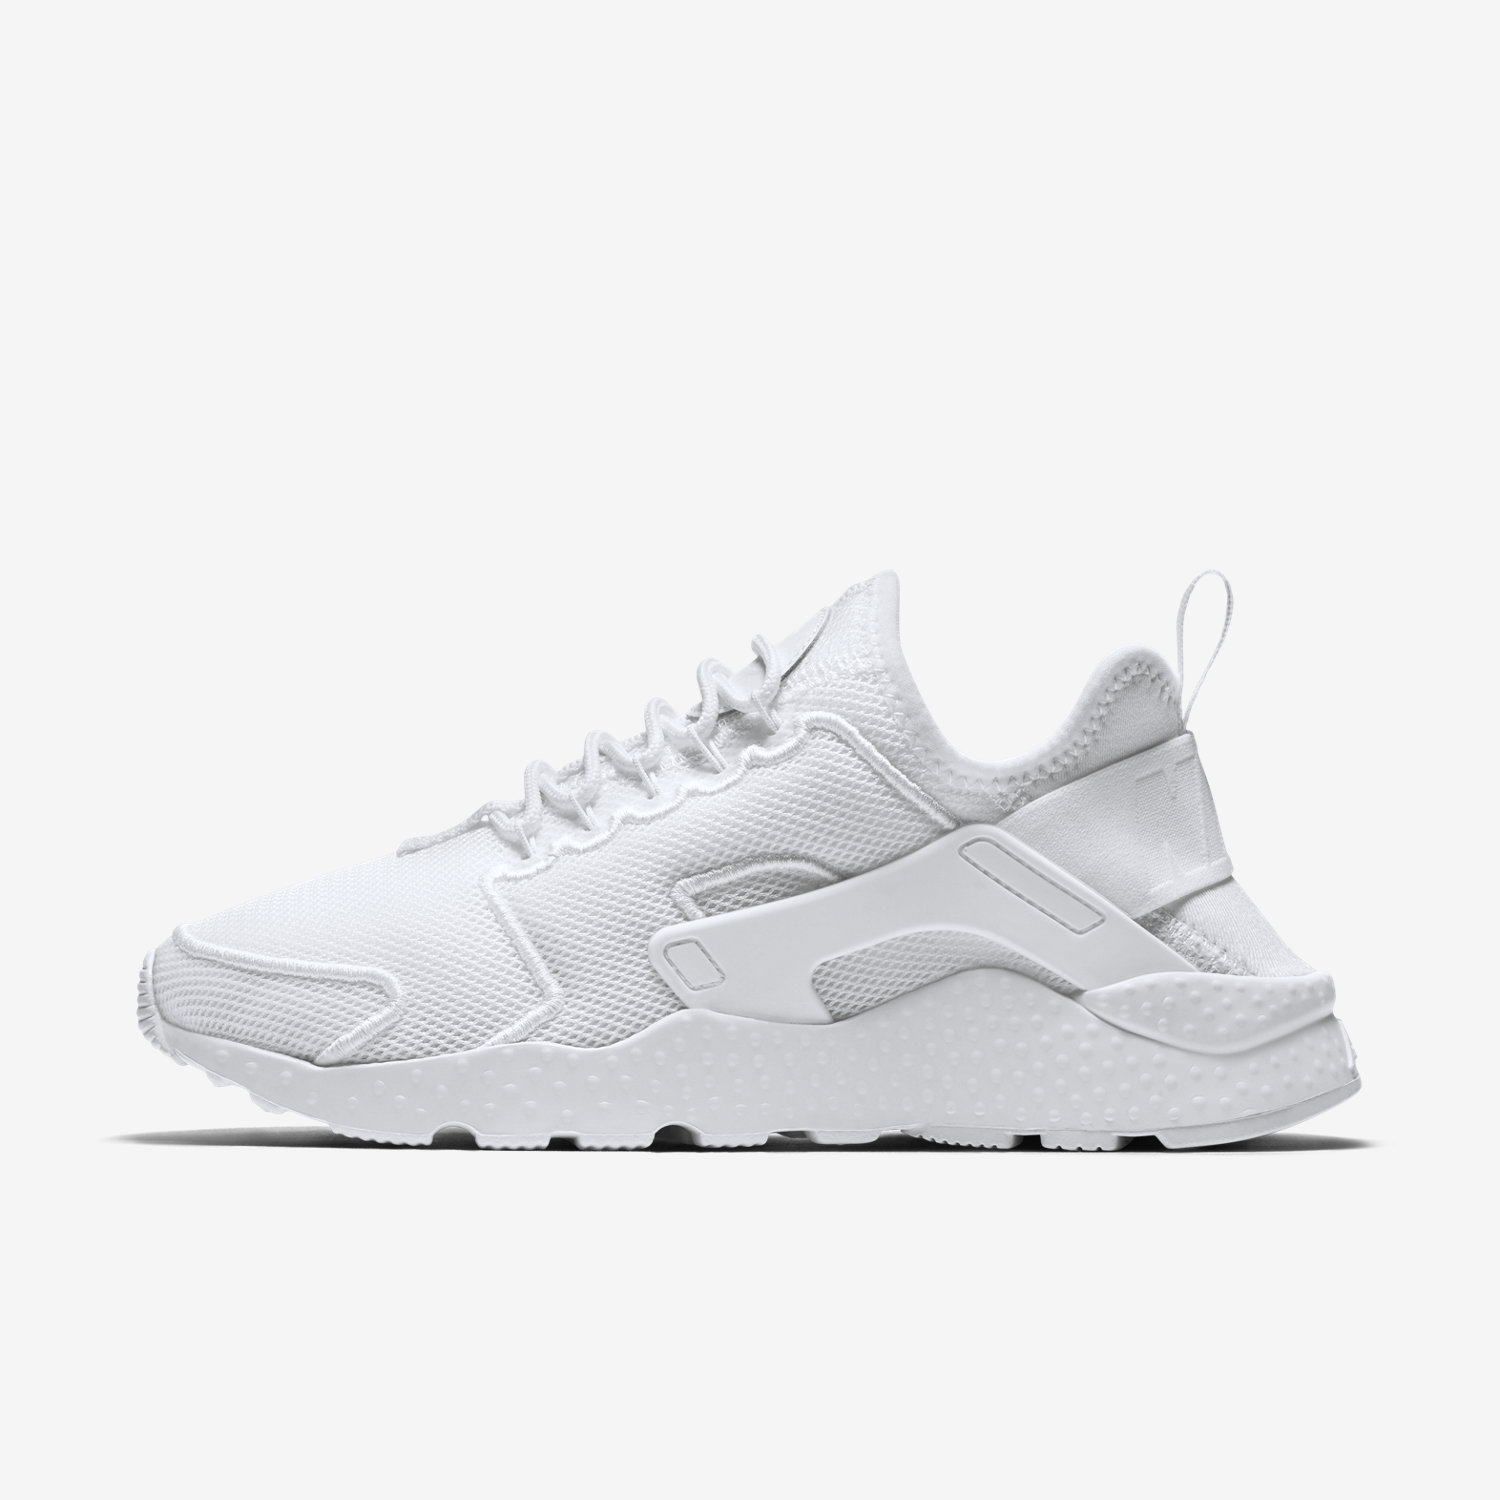 Nike Huarache Ultra Breathe